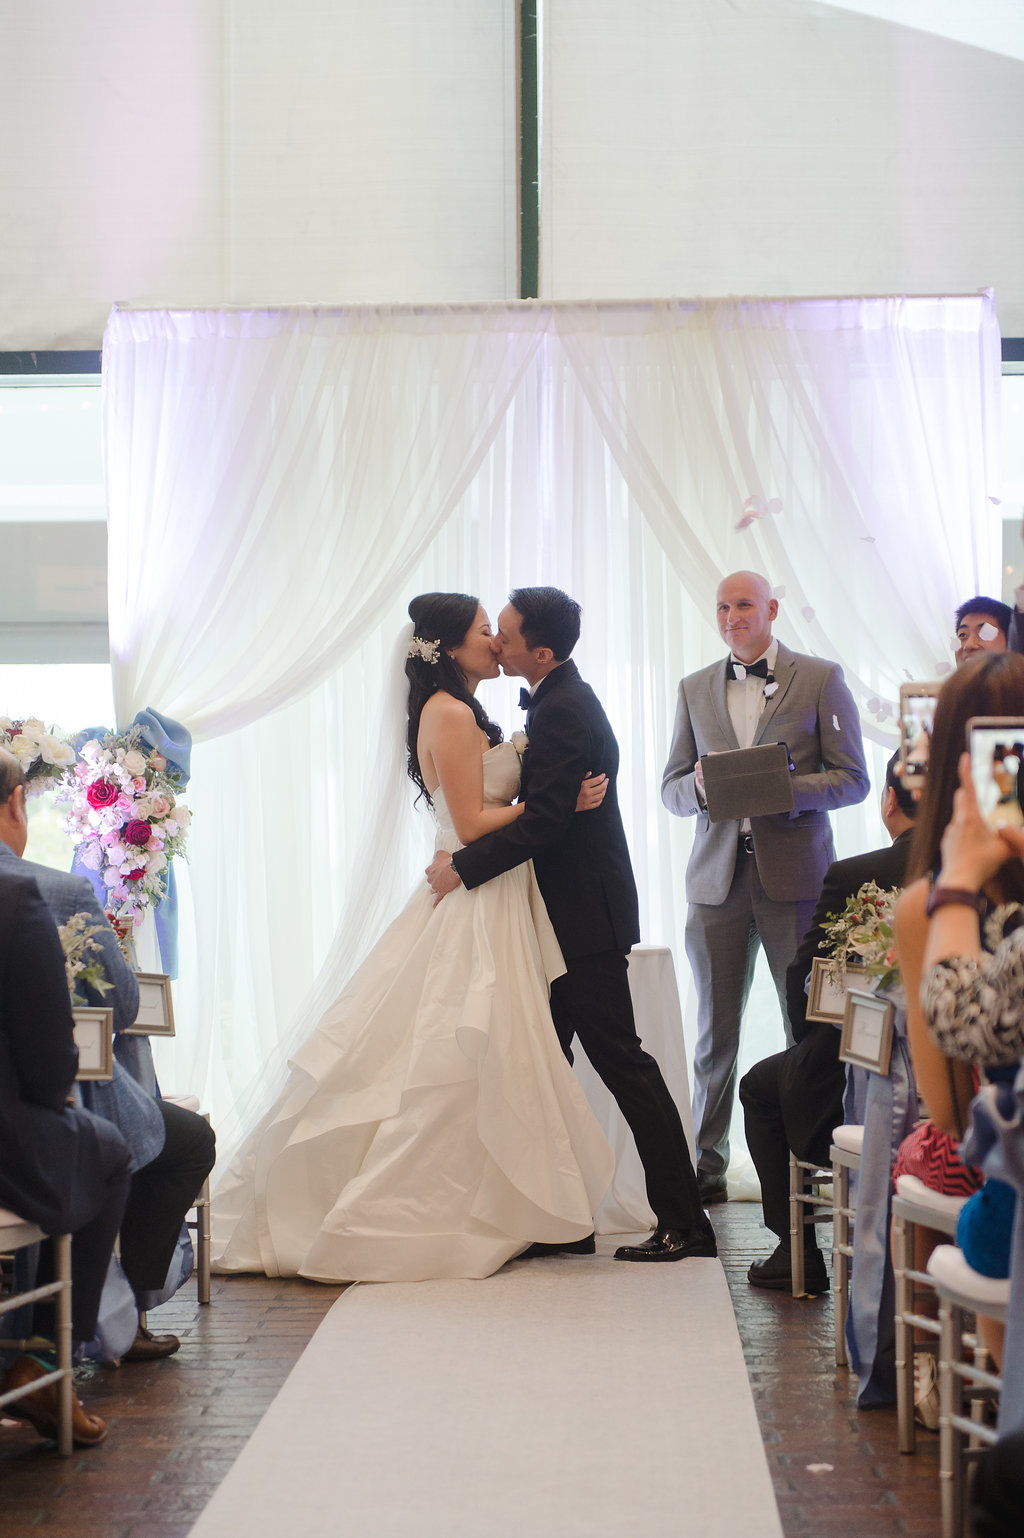 A harpist serenaded the bride's entrance, and the couple exchanged vows led by their church's pastor.